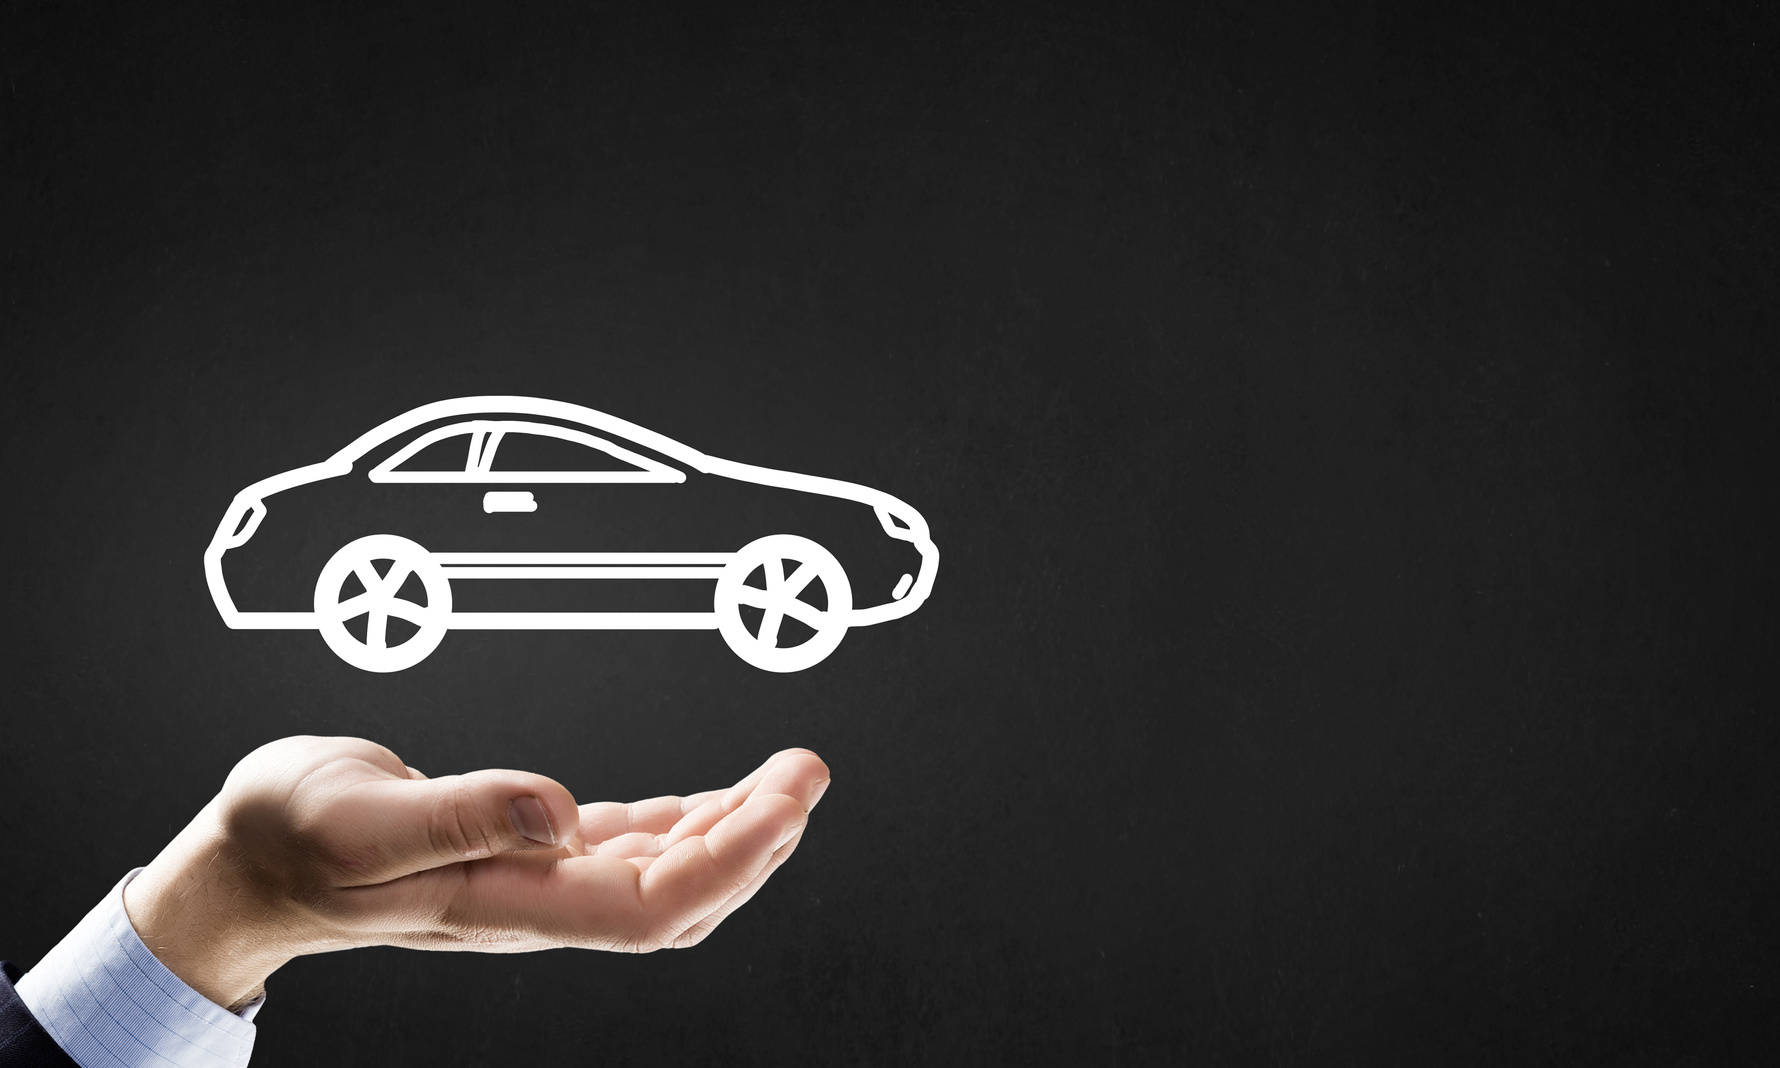 Shopping for Car Insurance? Shop Wisely With These Tips